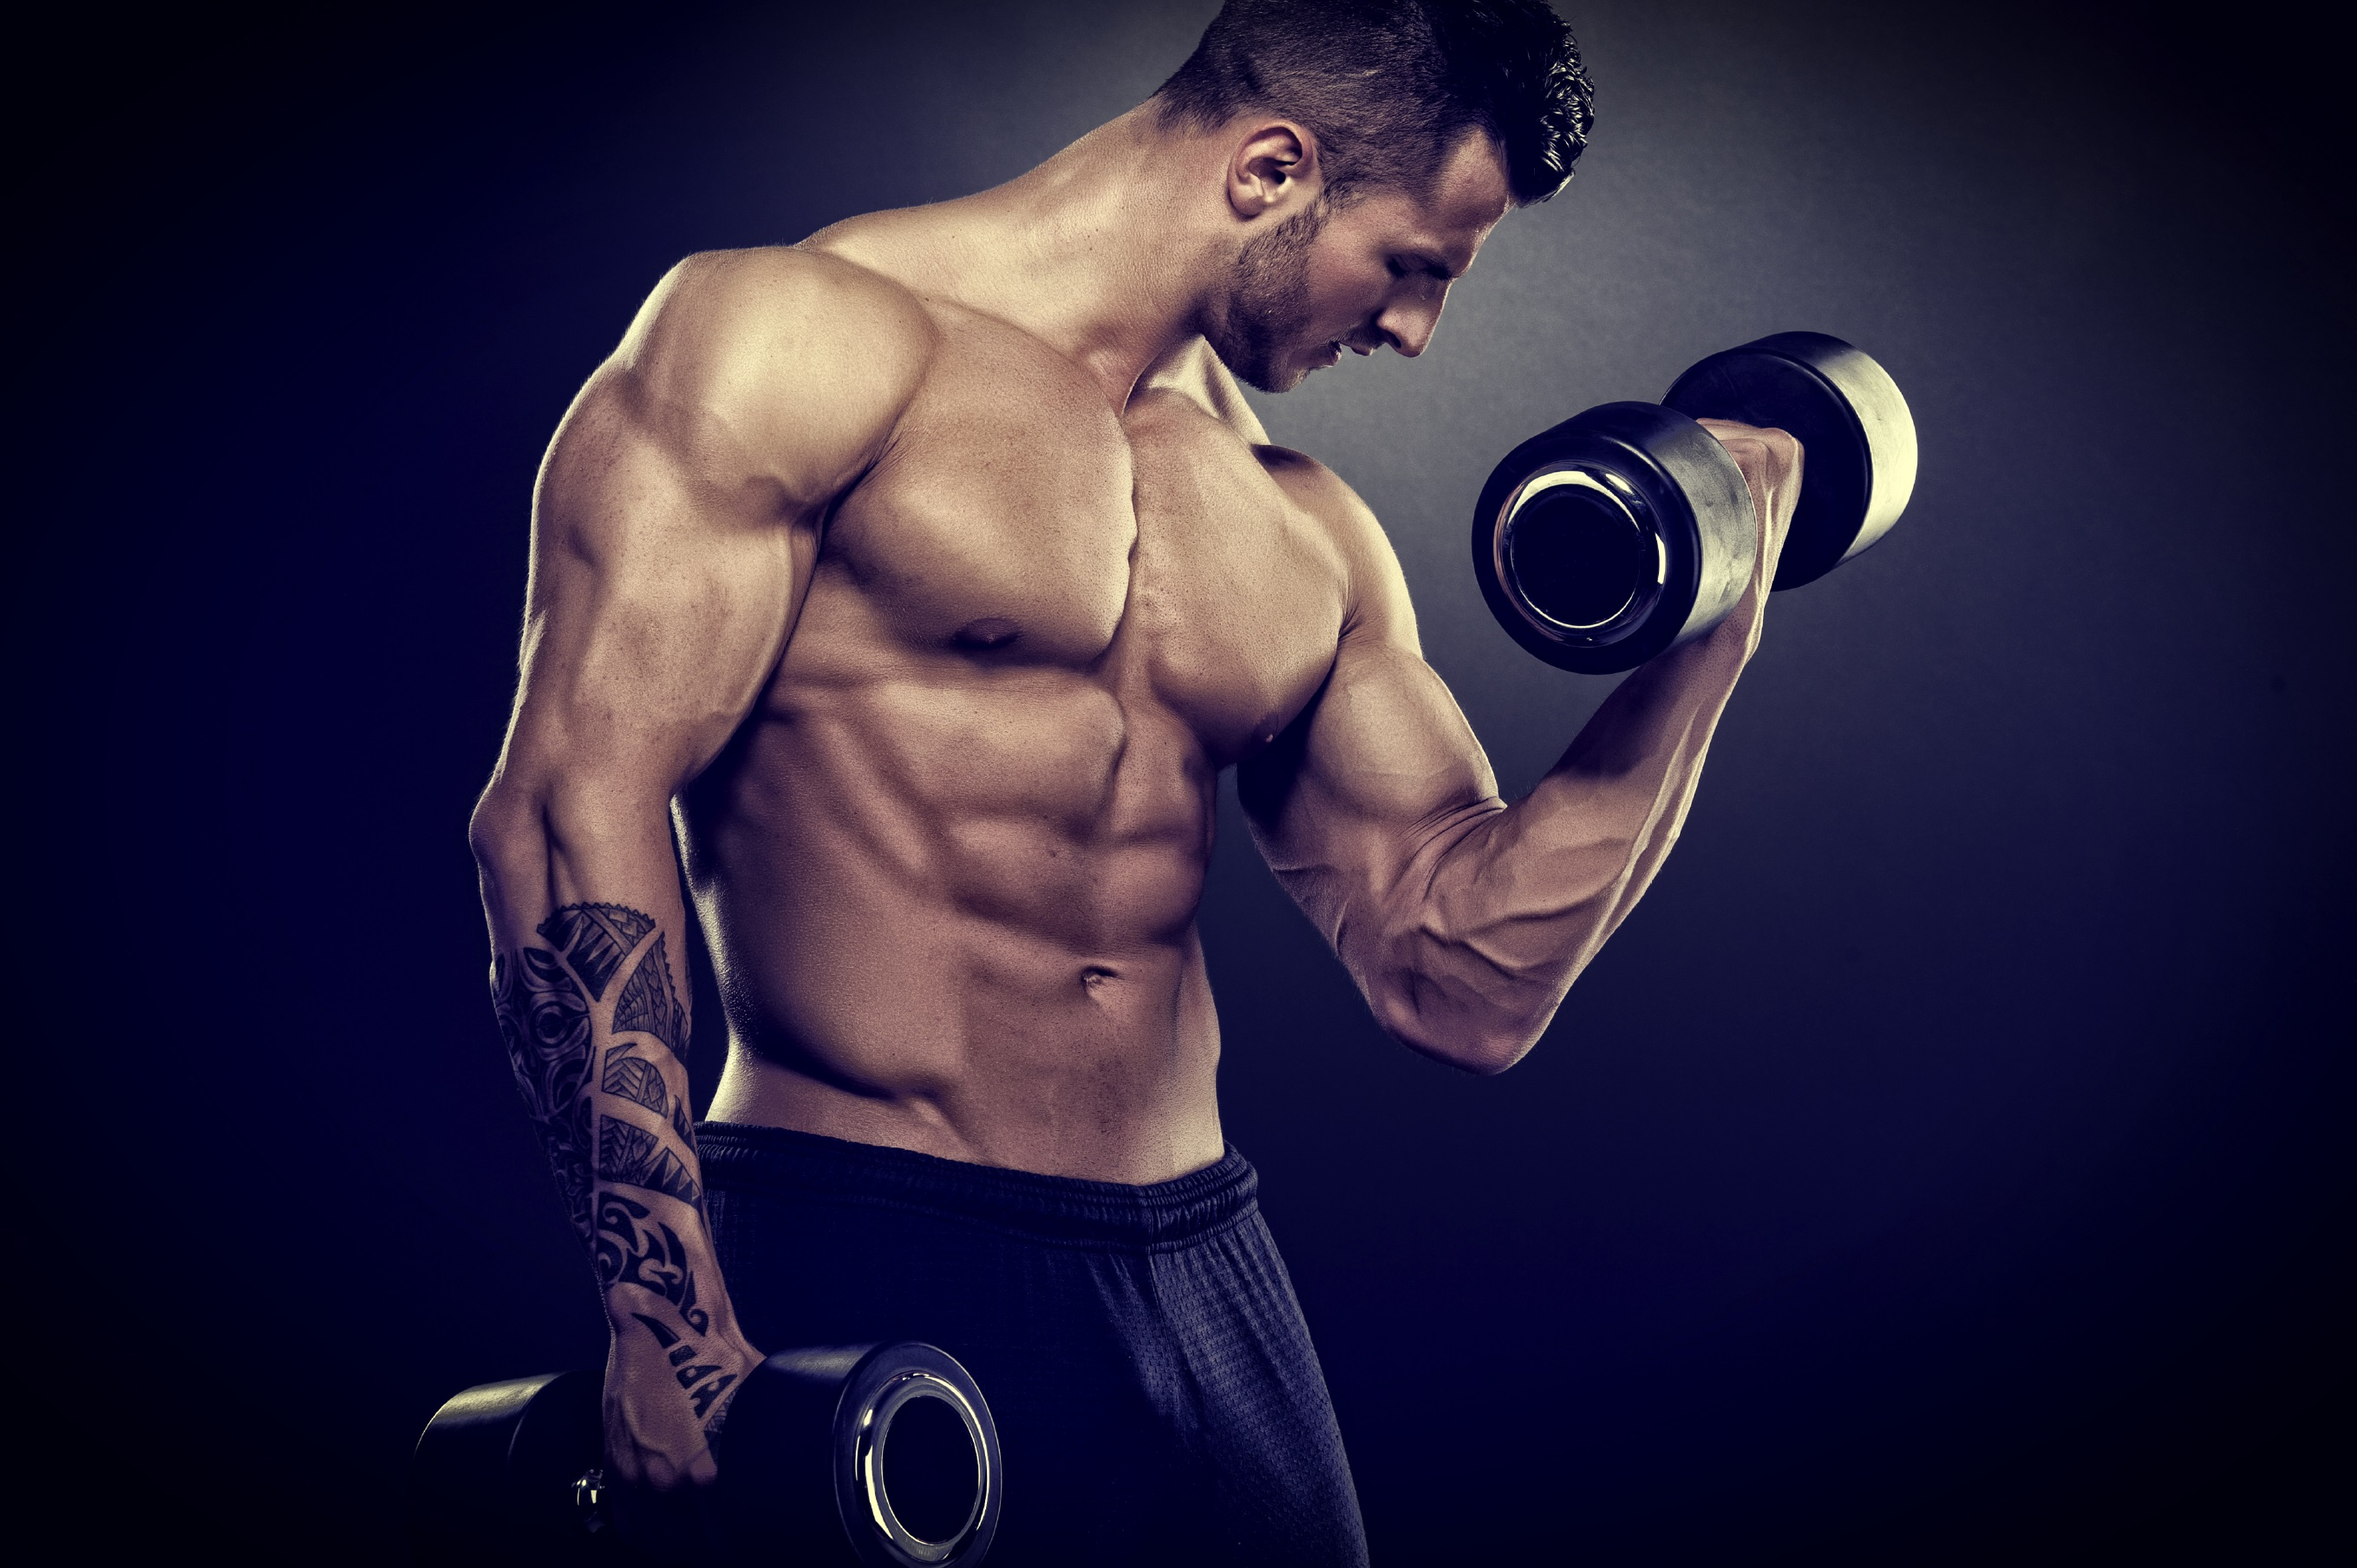 Image: Male, bodybuilder, muscle, body, tattoo, dumbbell